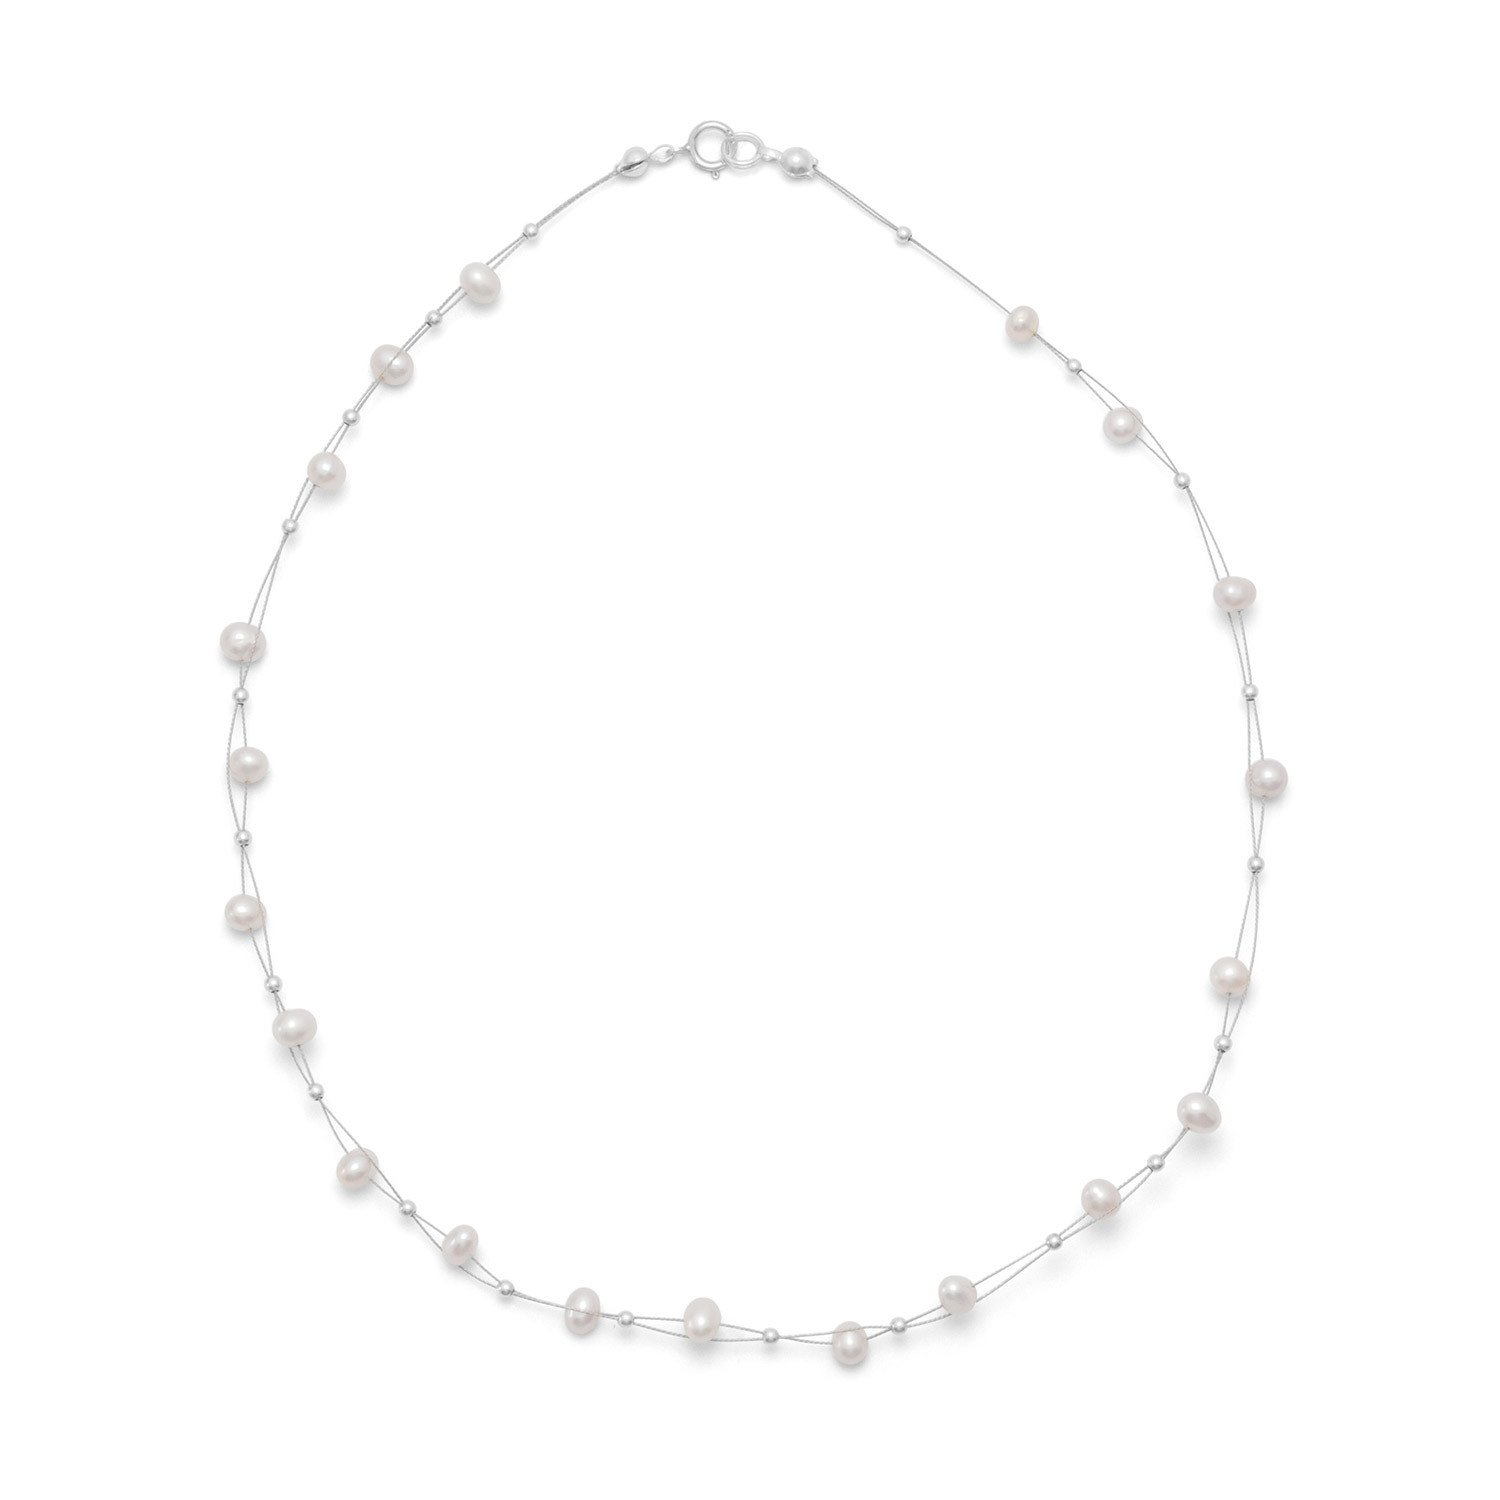 Sterling Silver 16 Inch Double Strand Intertwined Cultured Freshwater Pearl Necklace